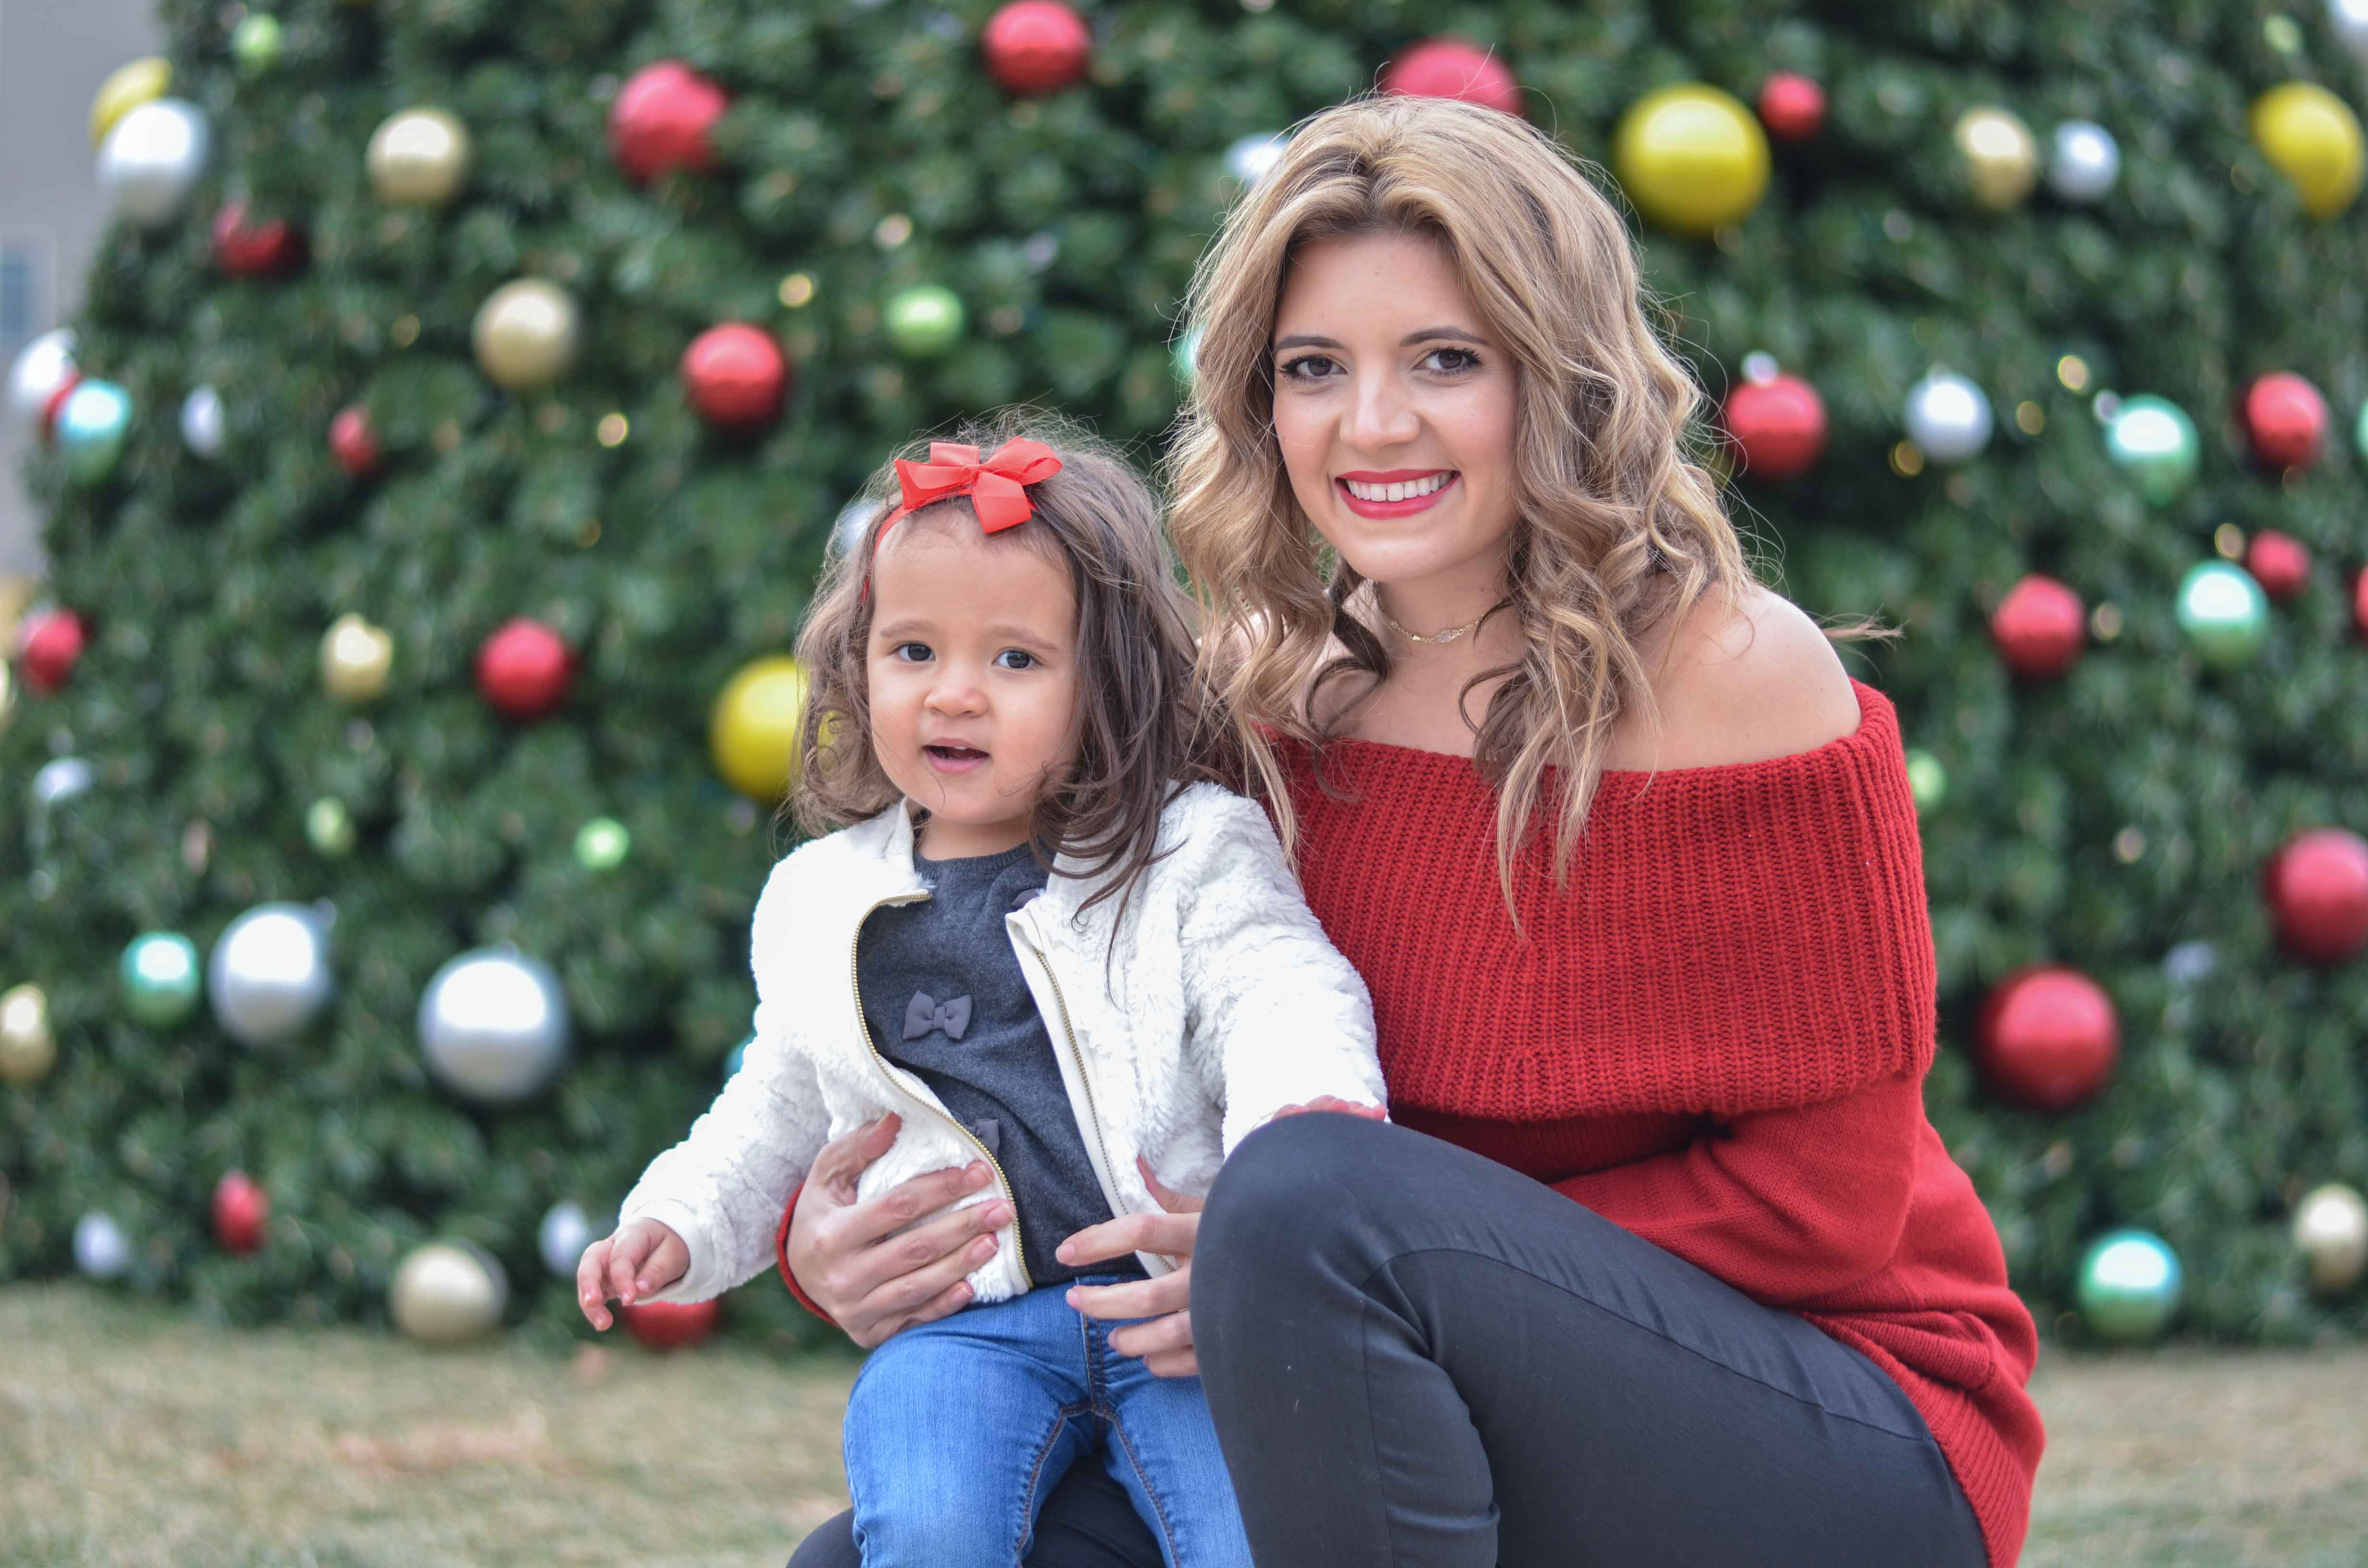 christmas family outfits - mother toddler girl outfit for holidays | www.bylaurenm.com